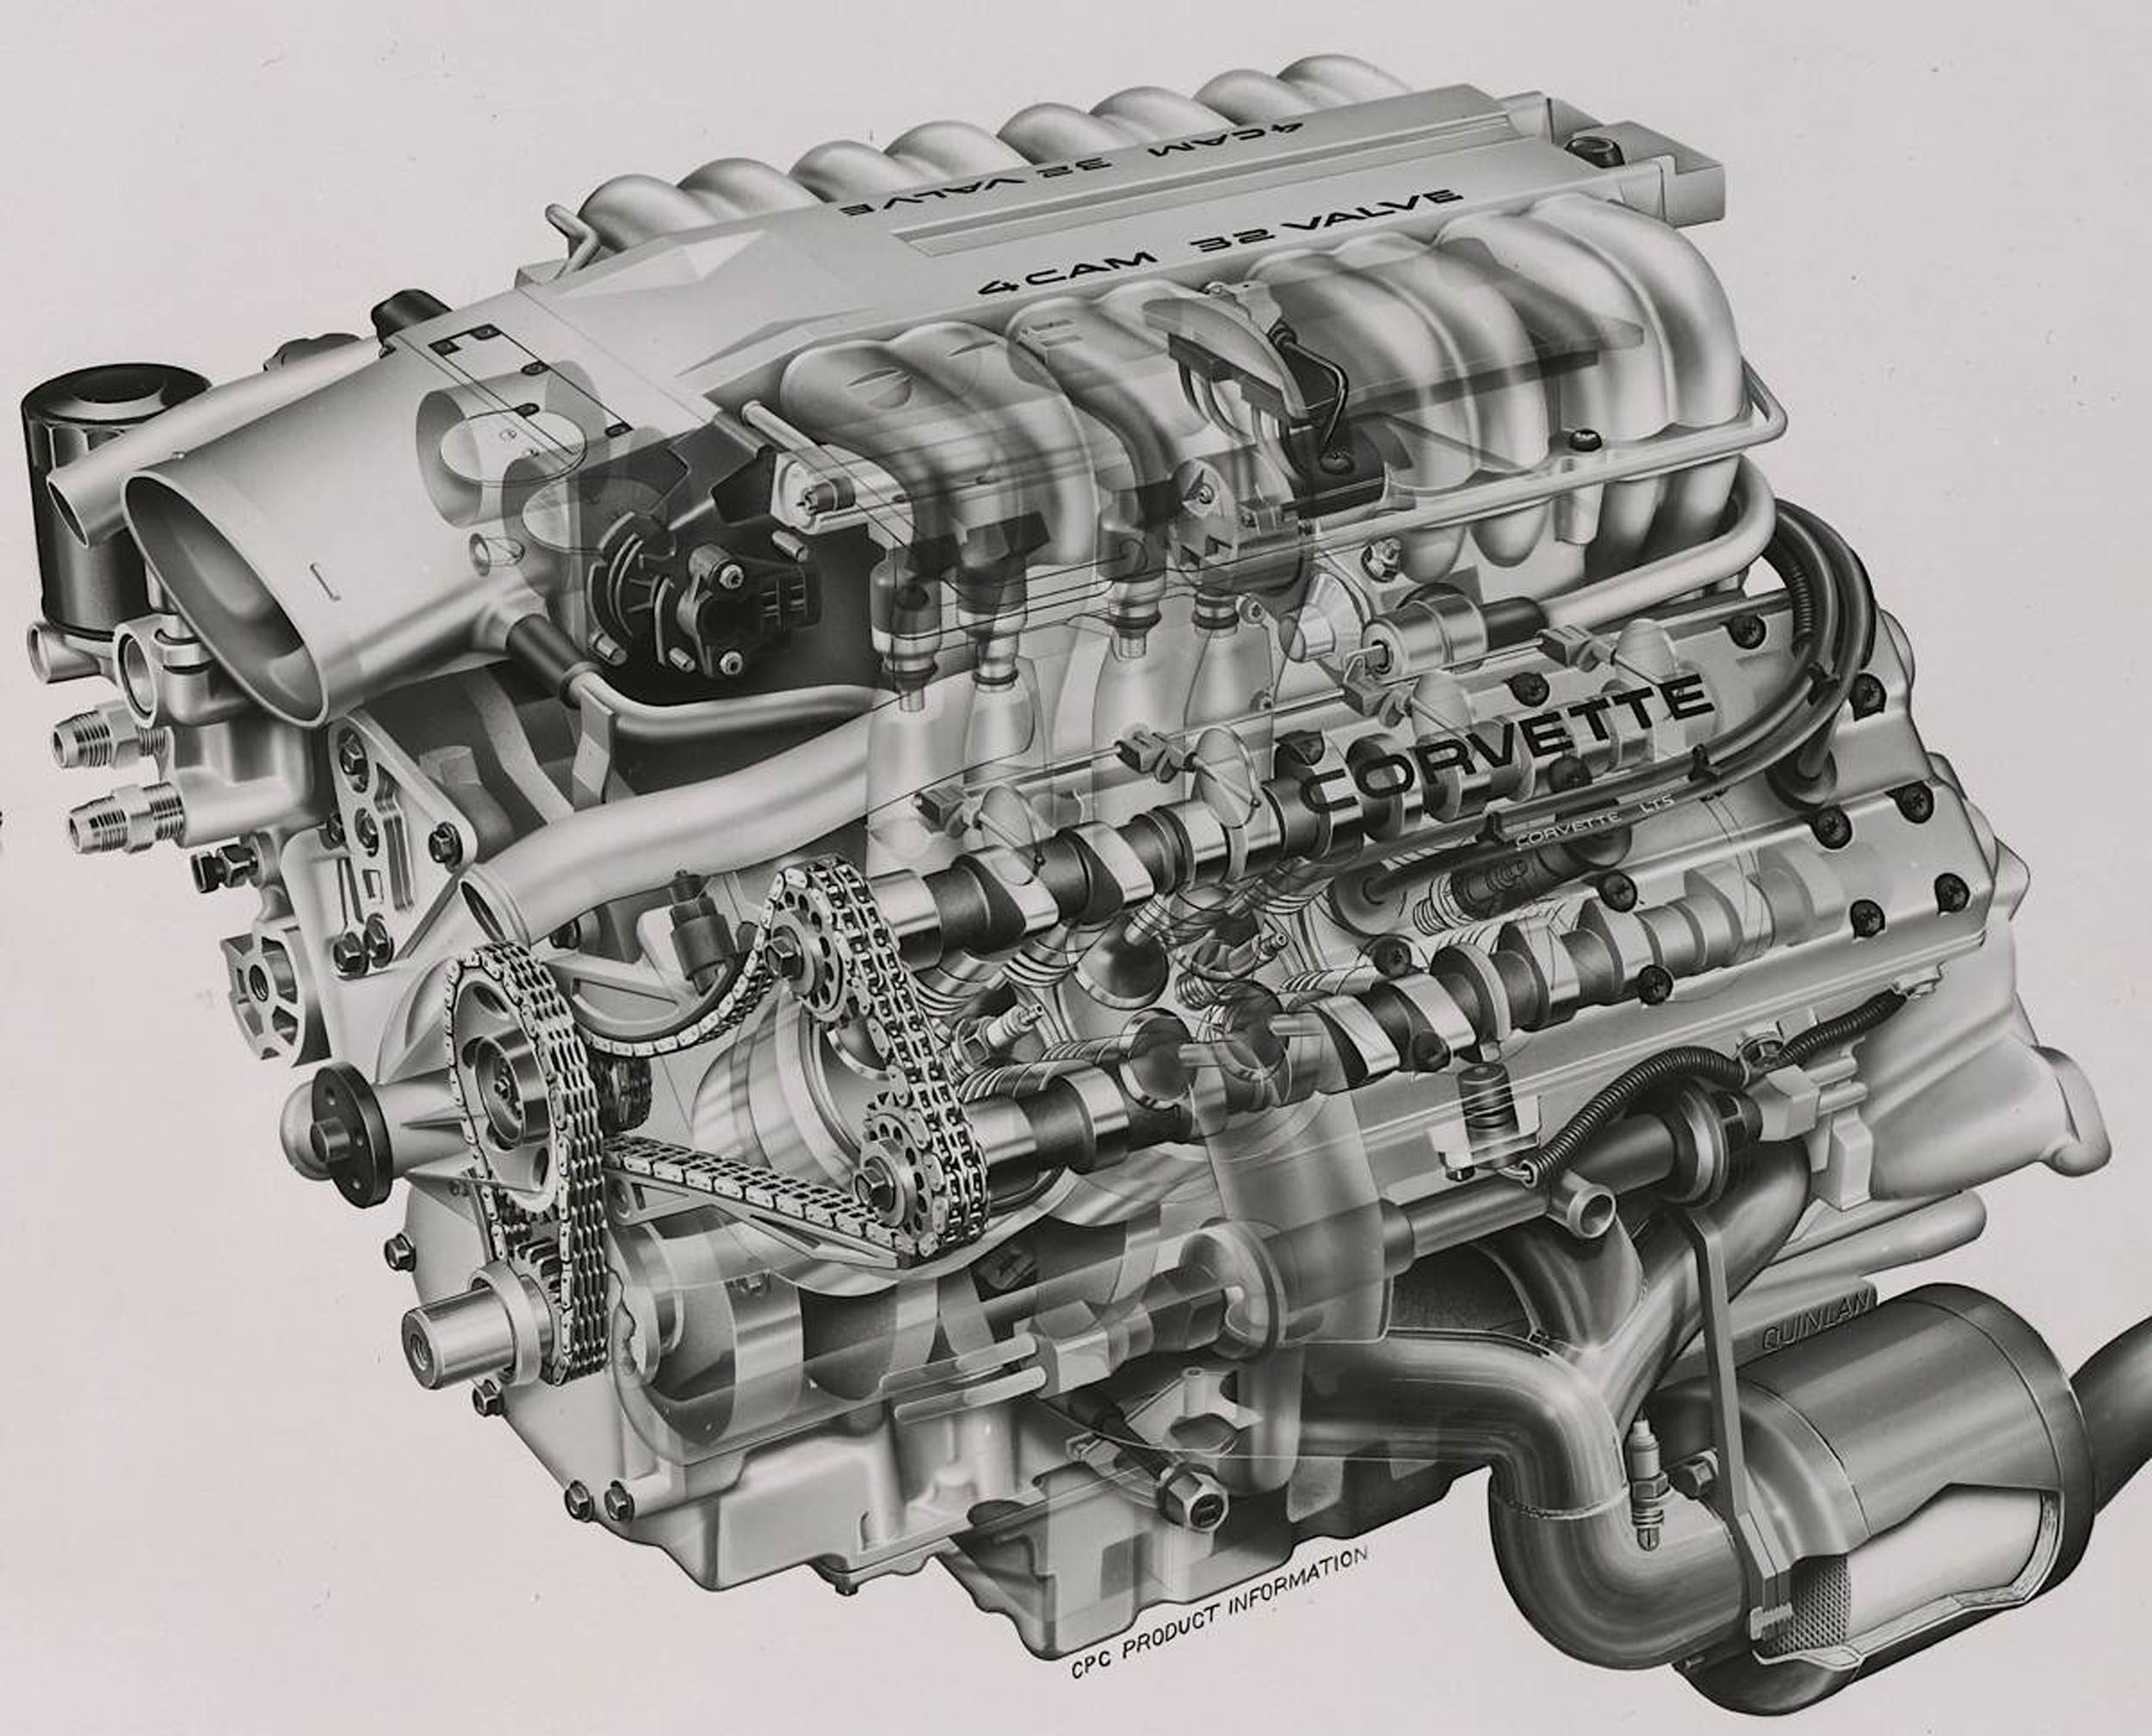 A Look At The C4 ZR-1's Jewel-Like, All-Aluminum DOHC LT5 ...